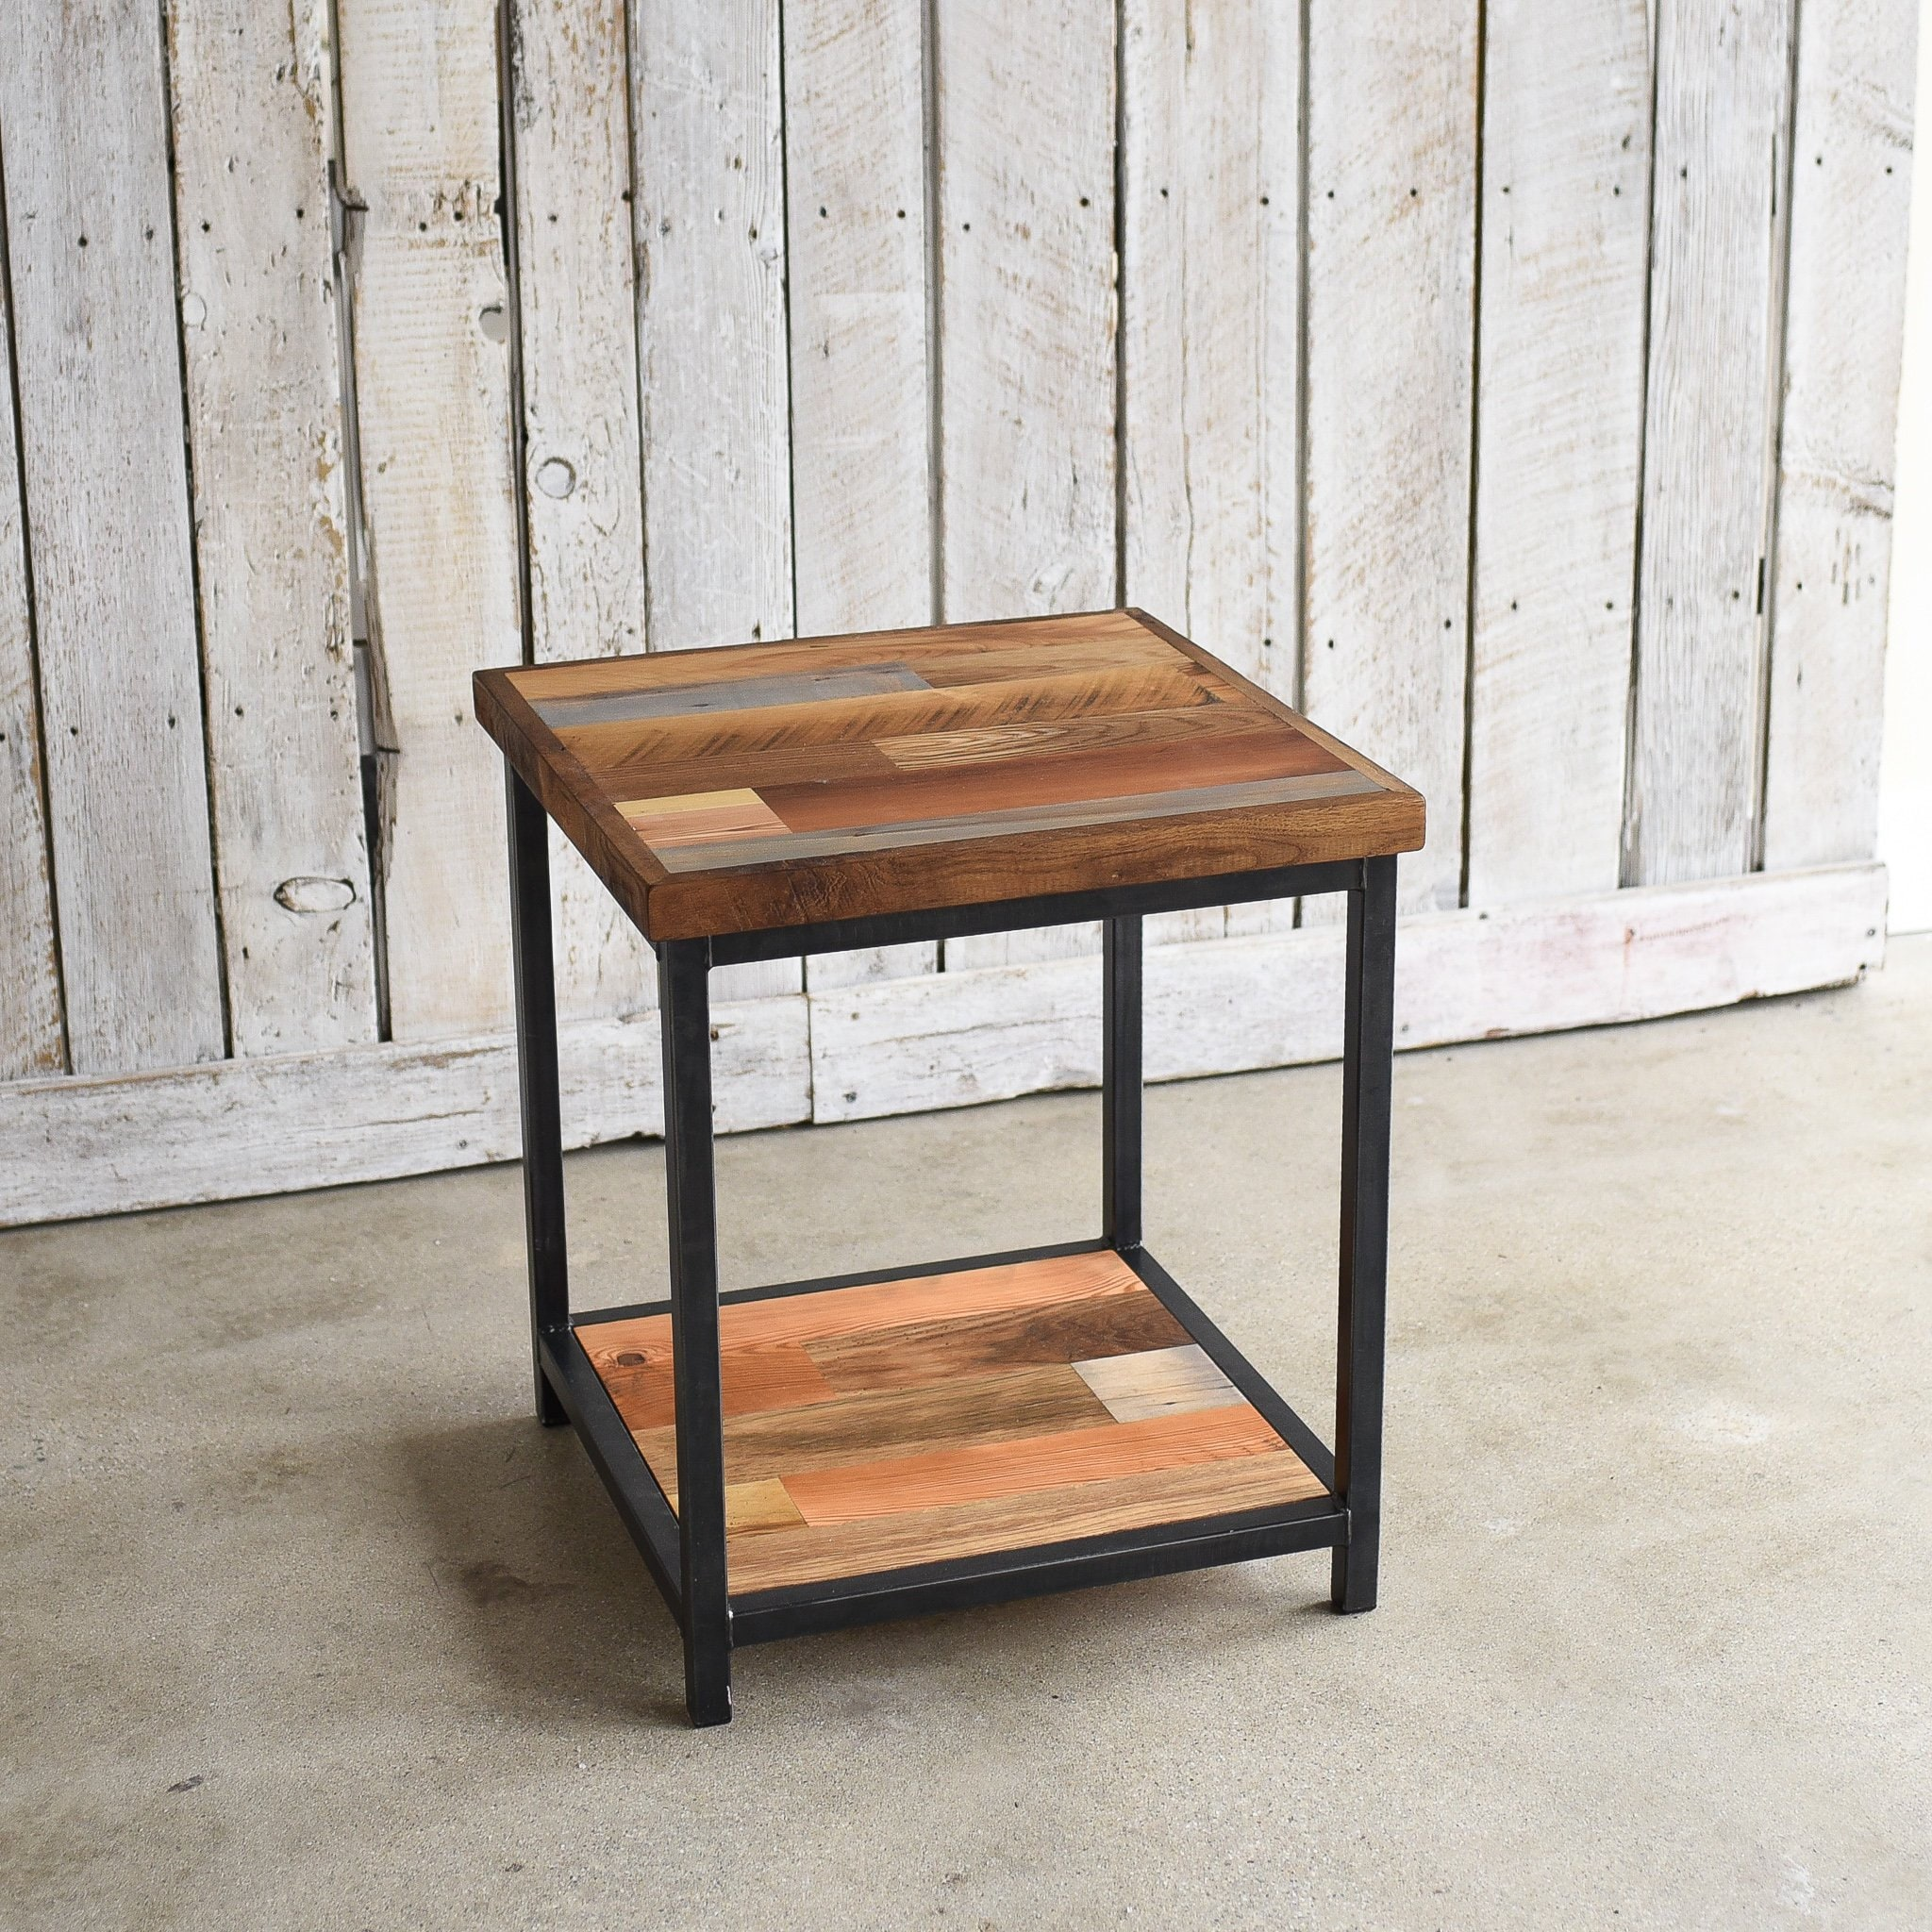 Rustic Wood End Table Rustic Accent Table Reclaimed Wood End Table Lower Shelf